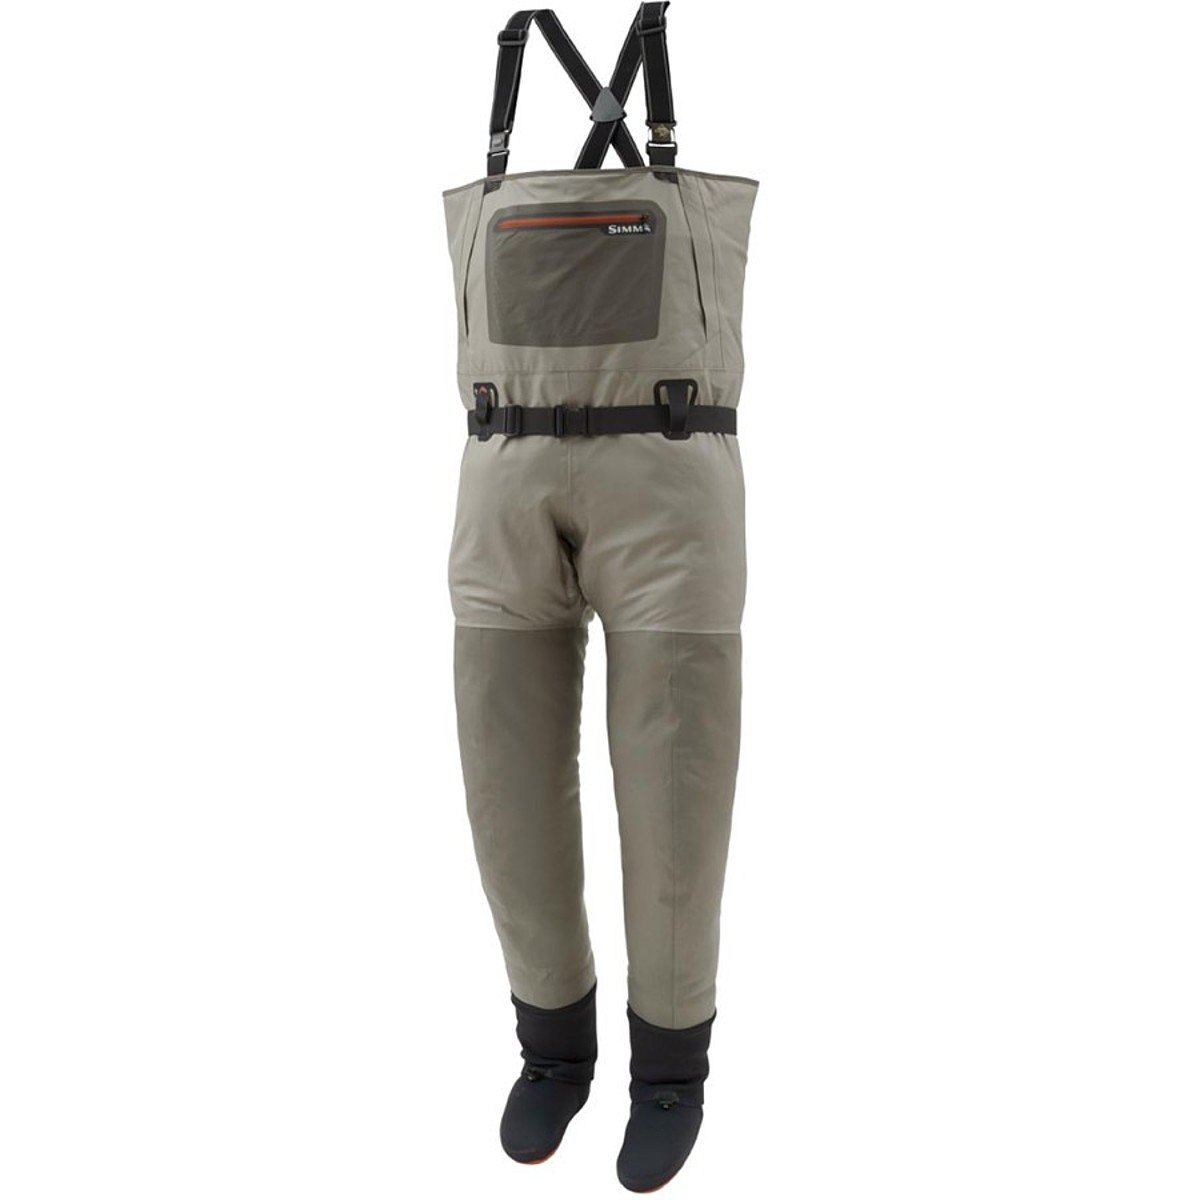 G3 Guide Stockingfoot Waders - Sterling